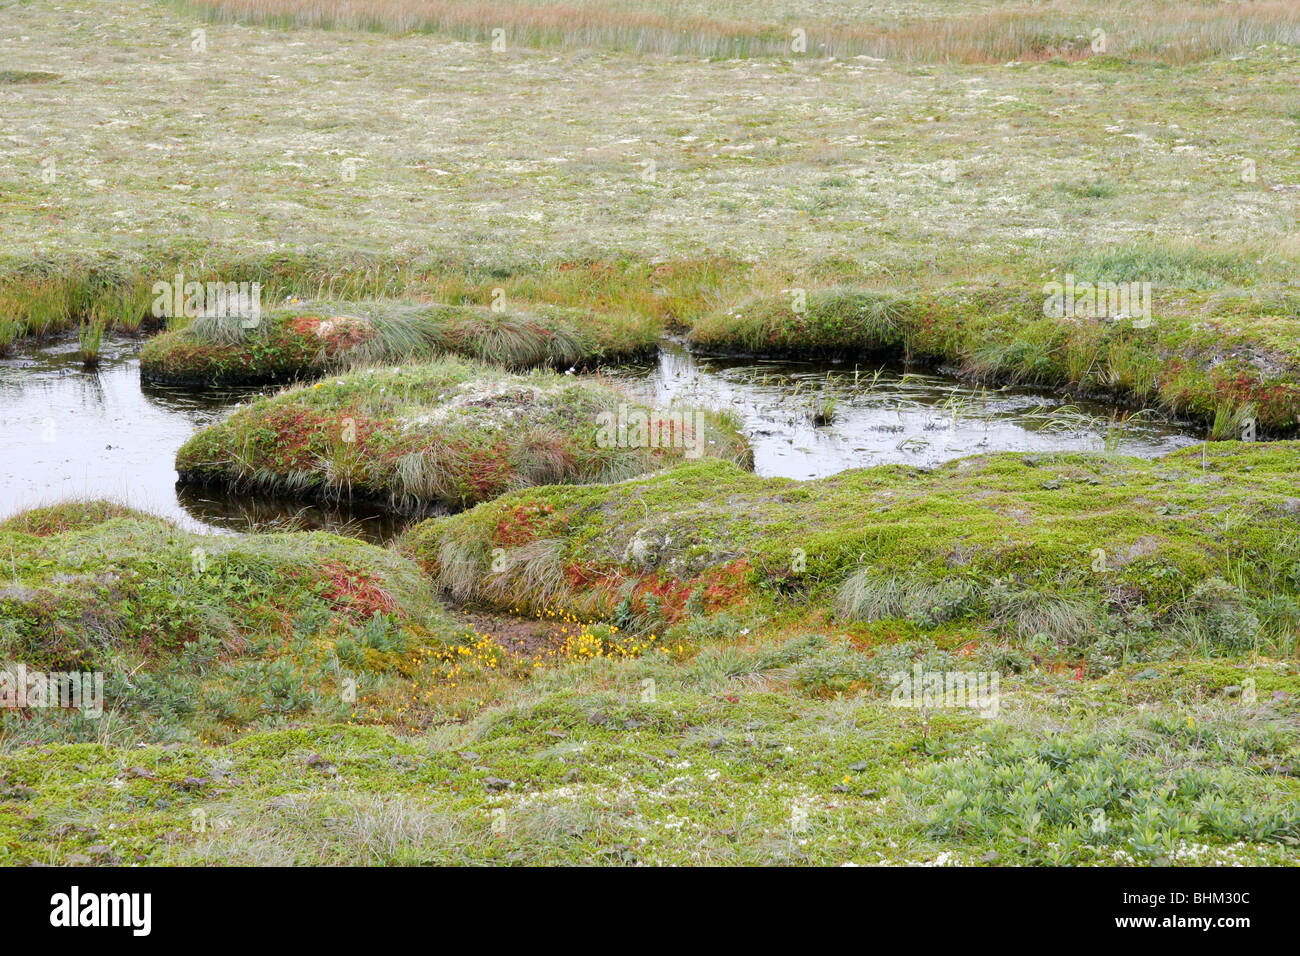 Wetland Scene along the road to Langlade on the Isle of Miquelon (France) - Stock Image